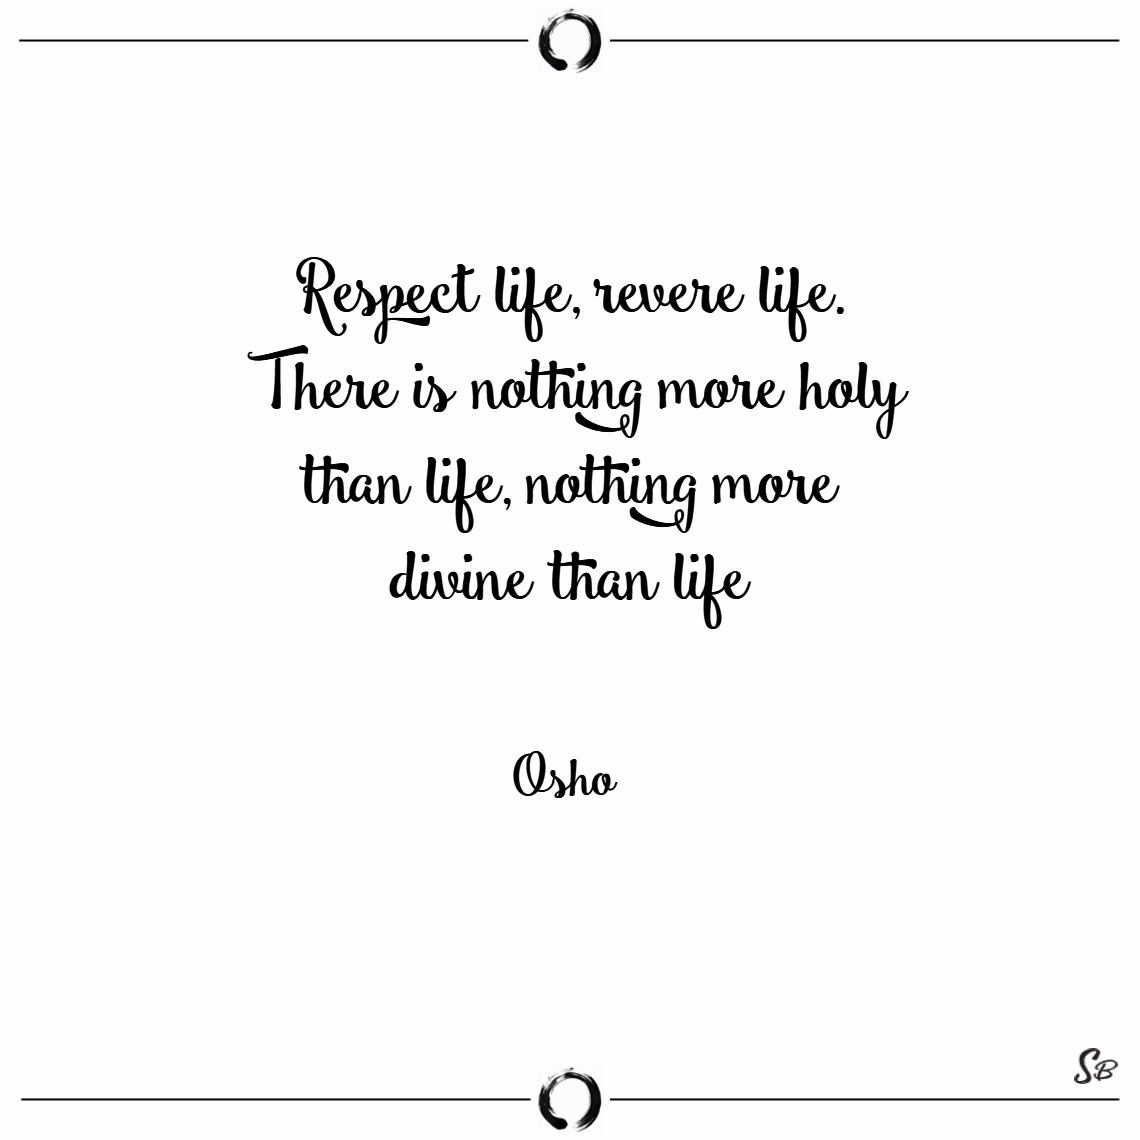 Respect life, revere life. there is nothing more h